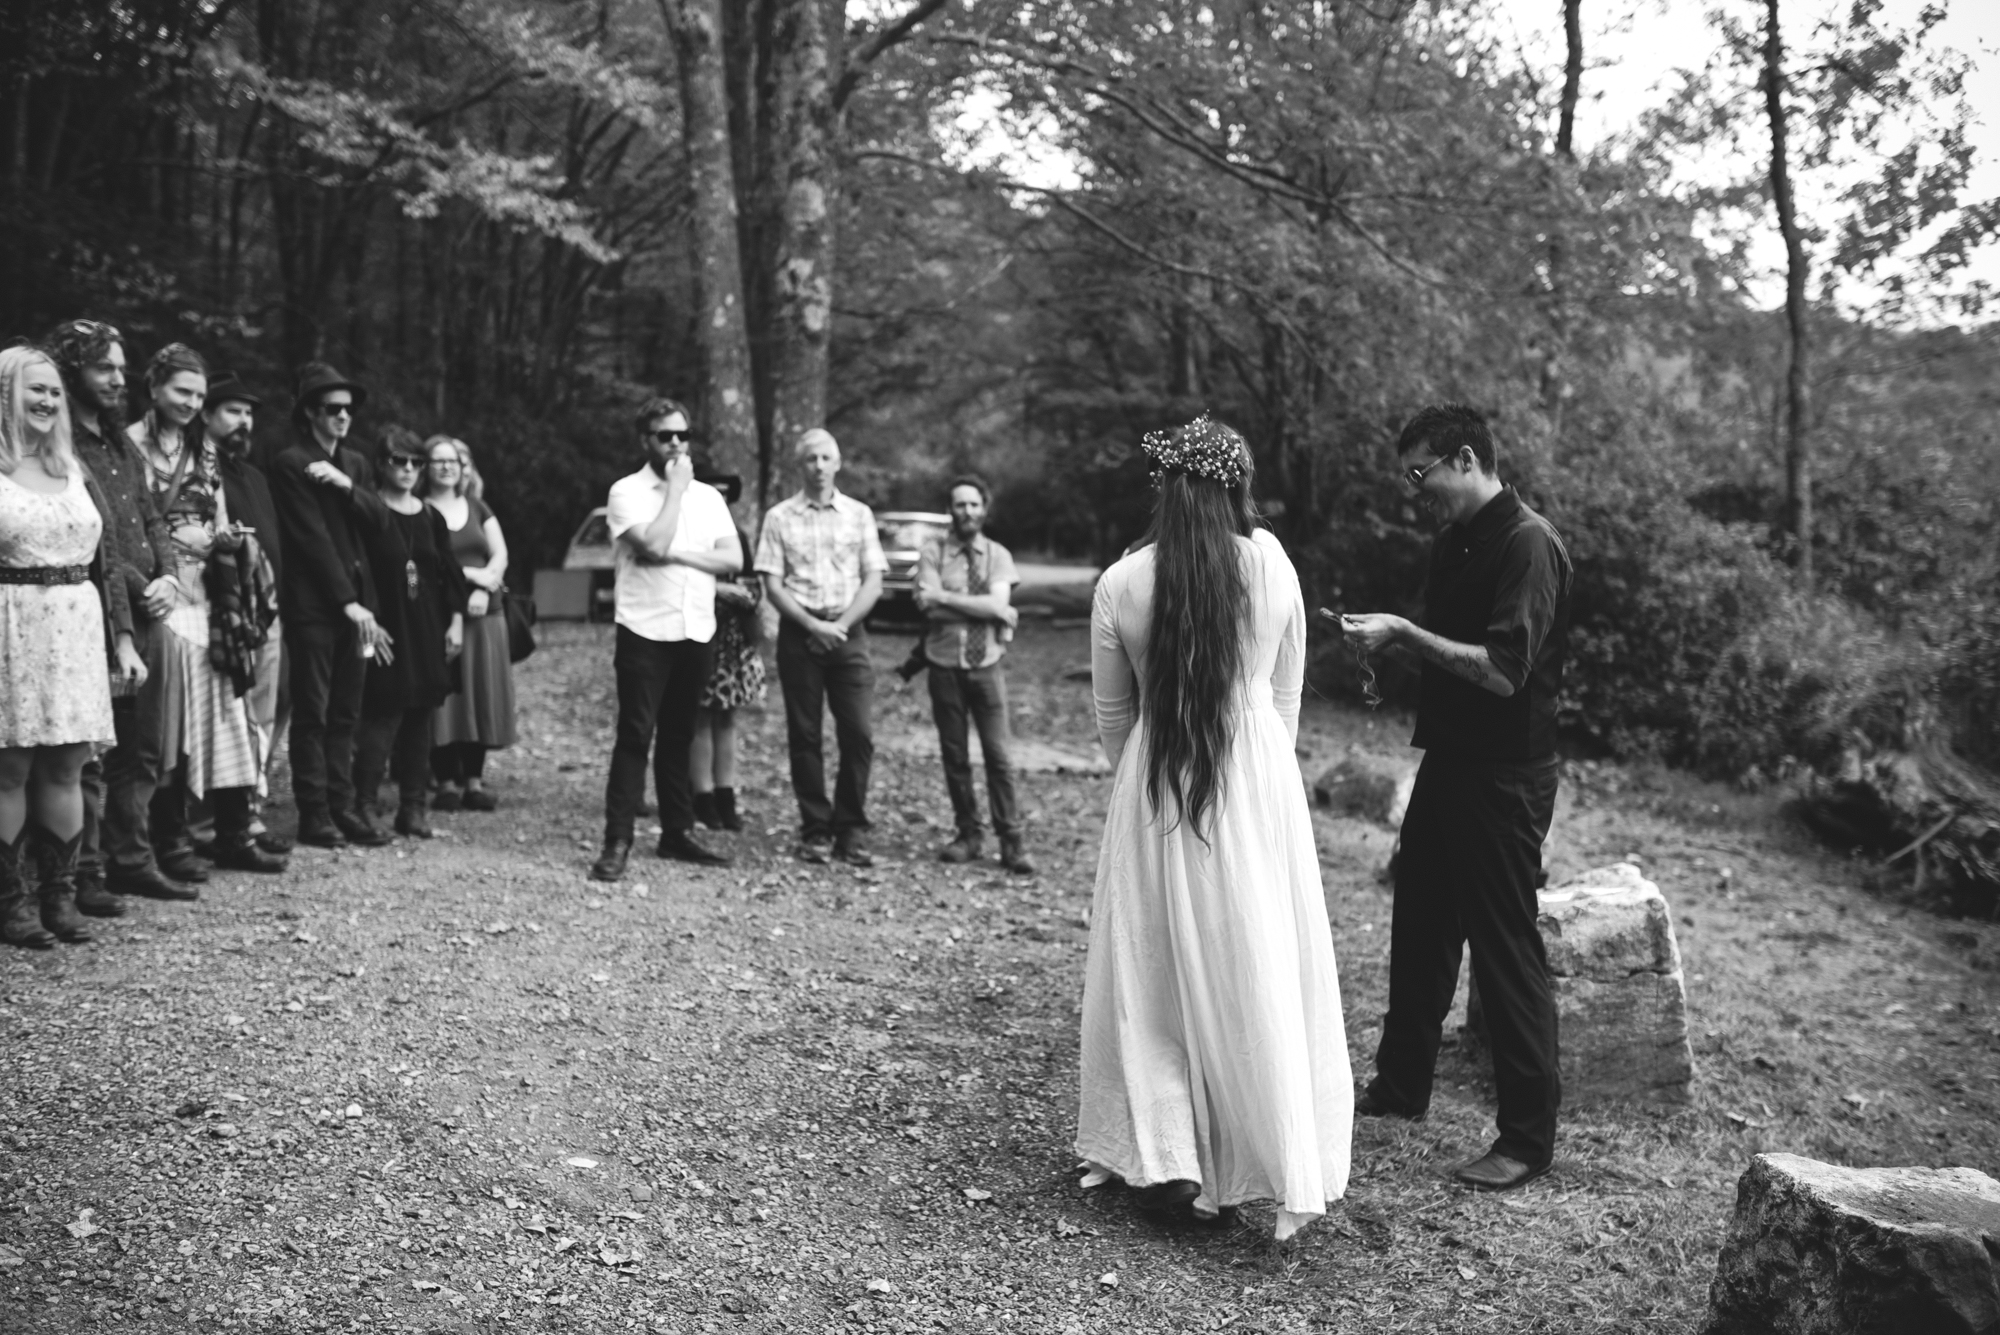 Mountain Wedding, Outdoors, Rustic, West Virginia, Maryland Wedding Photographer, DIY, Casual, guests gathered to watch ceremony, black and white ceremony, bride with long hair and flowers